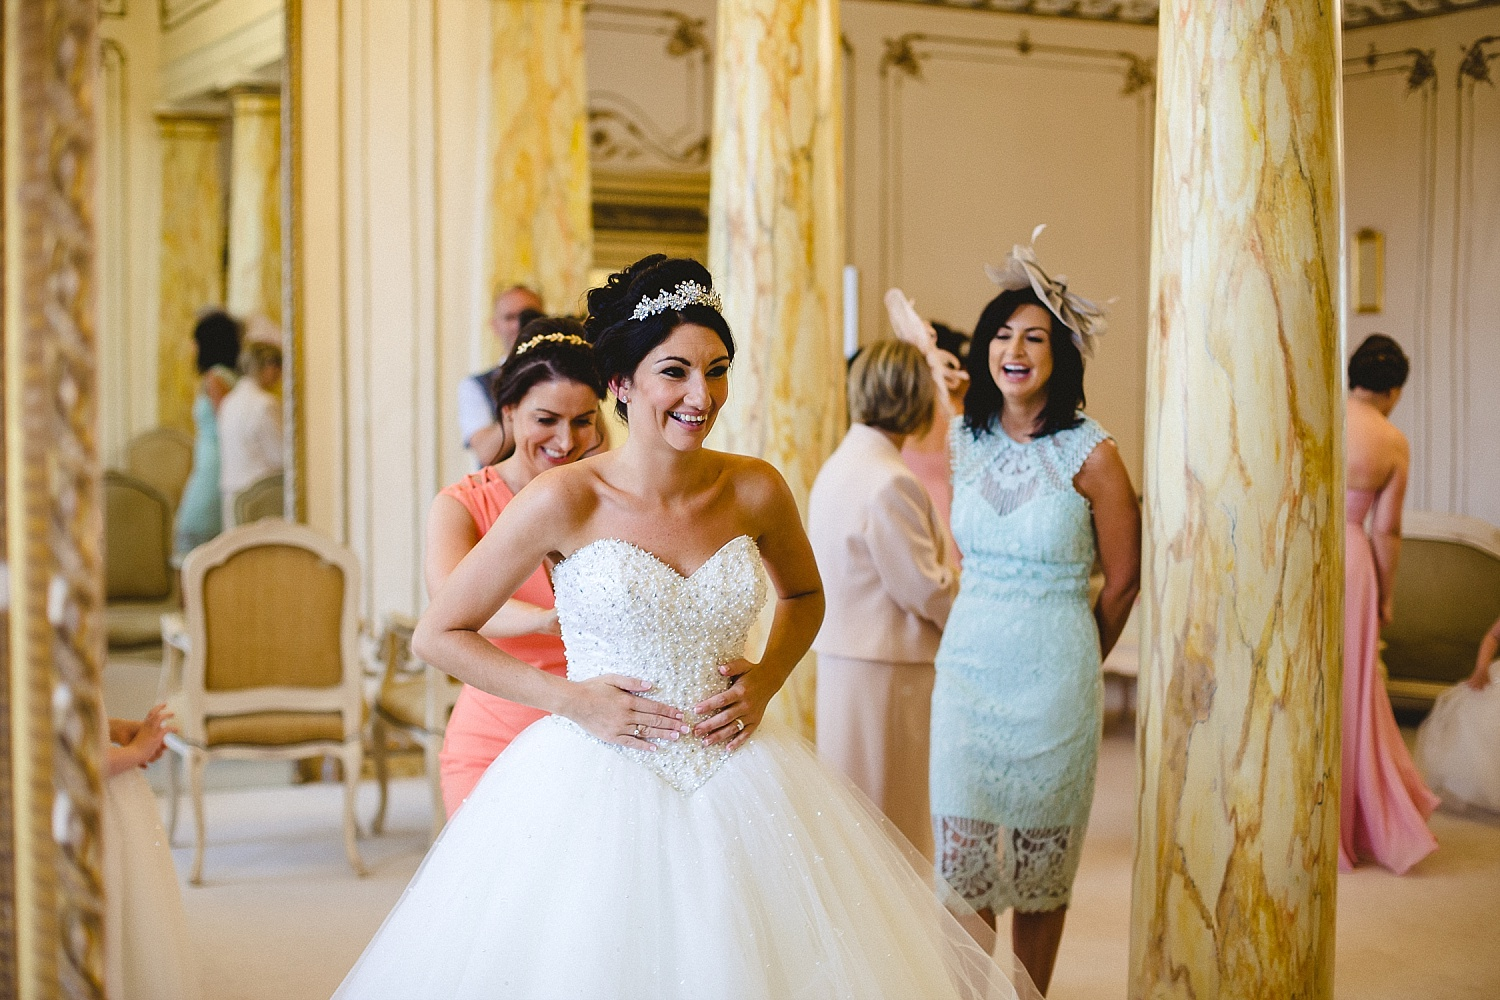 Essex Wedding Photographer - Gosfield Hall Wedding